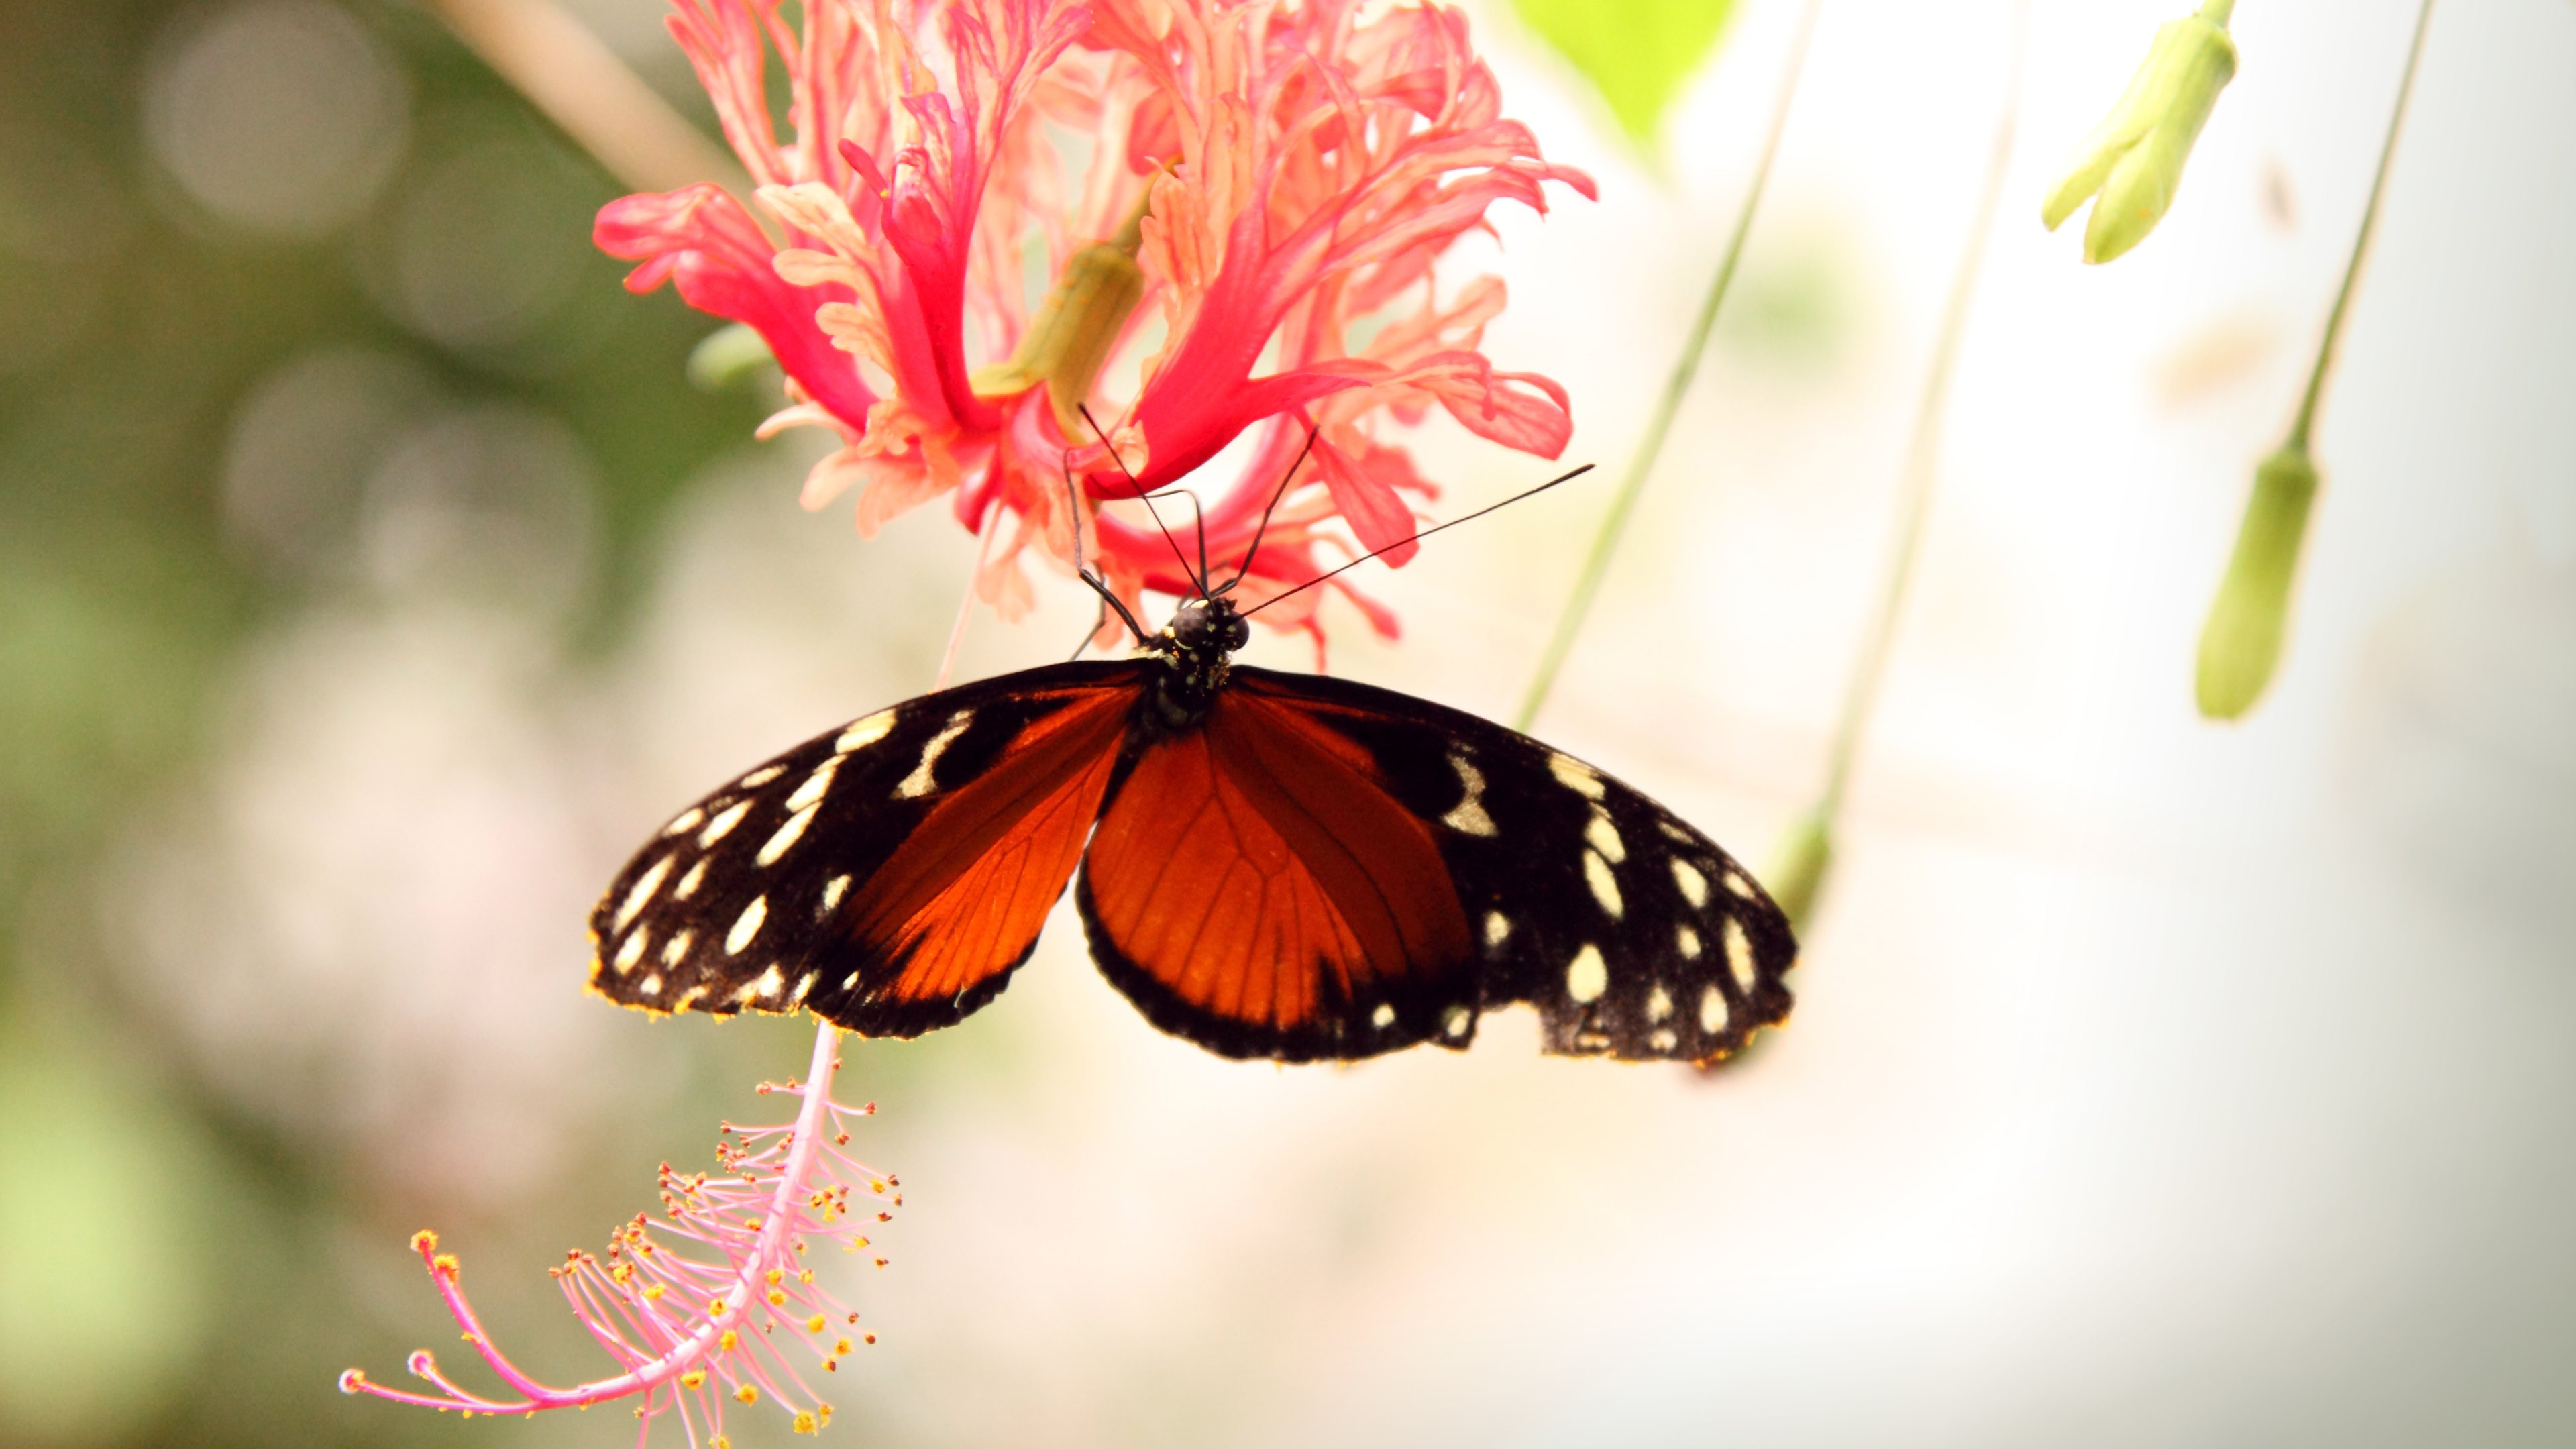 Full Hd Butterfly Wallpapers 4k 3840x2160 Download Hd Wallpaper Wallpapertip